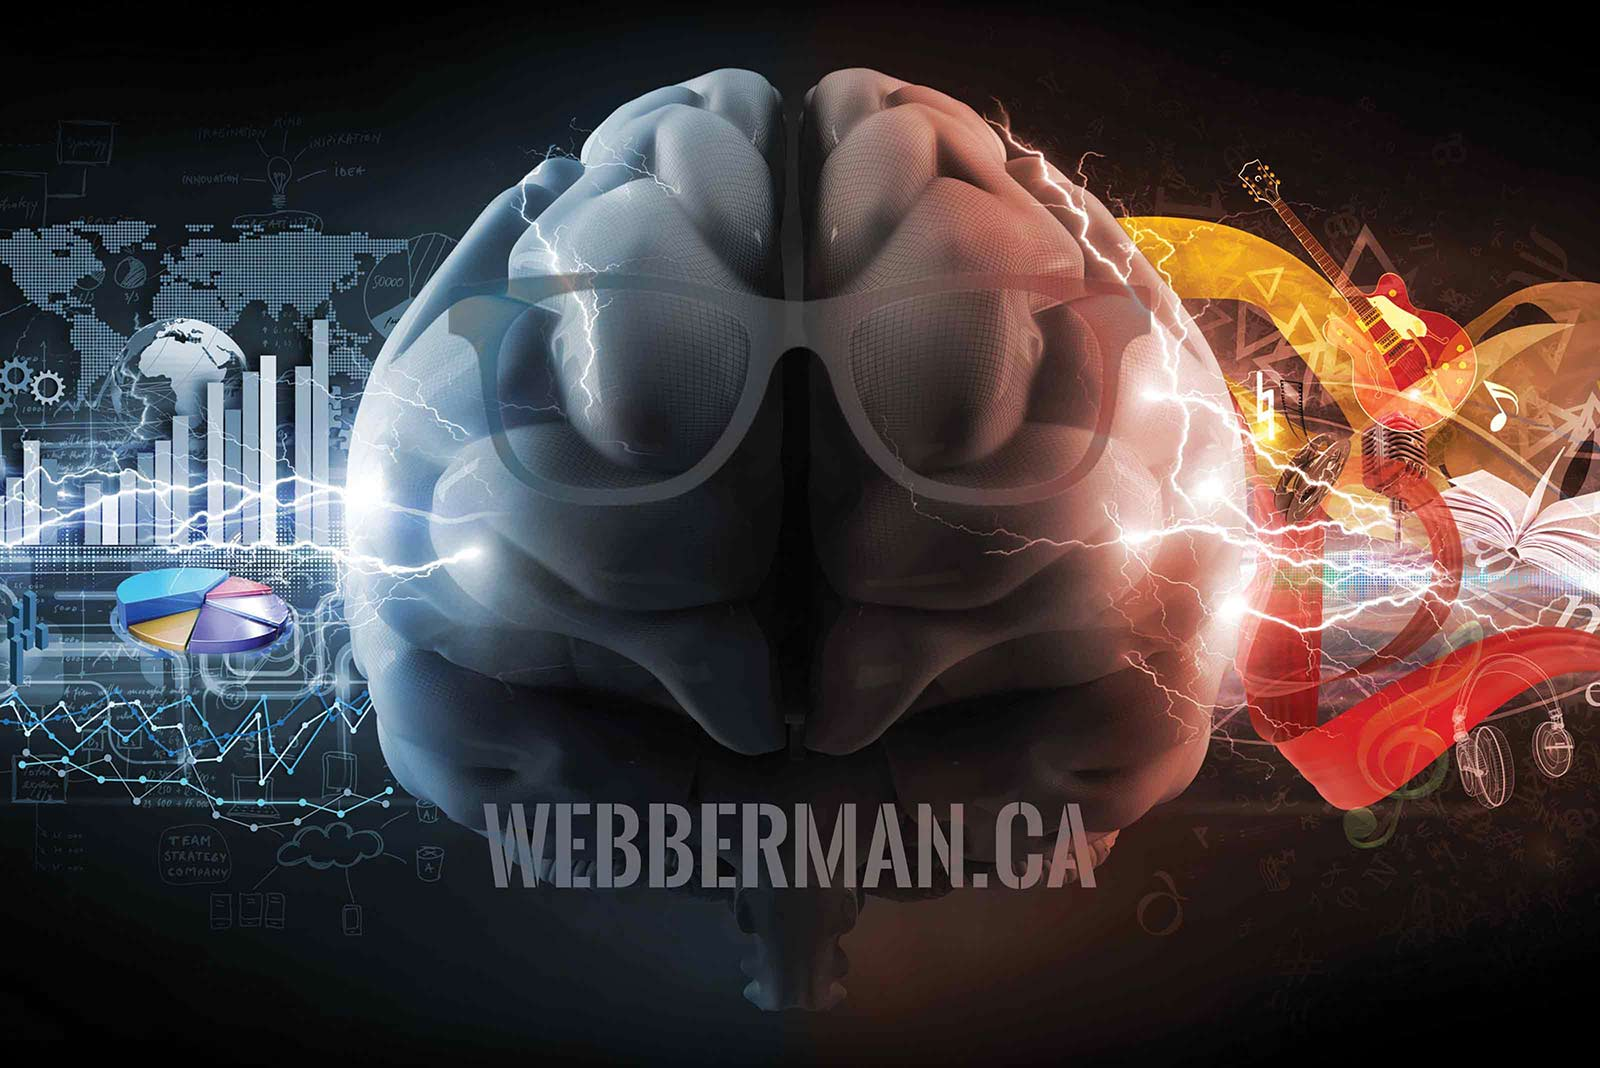 Webberman.ca website development in Eastern Ontario, Canada web design